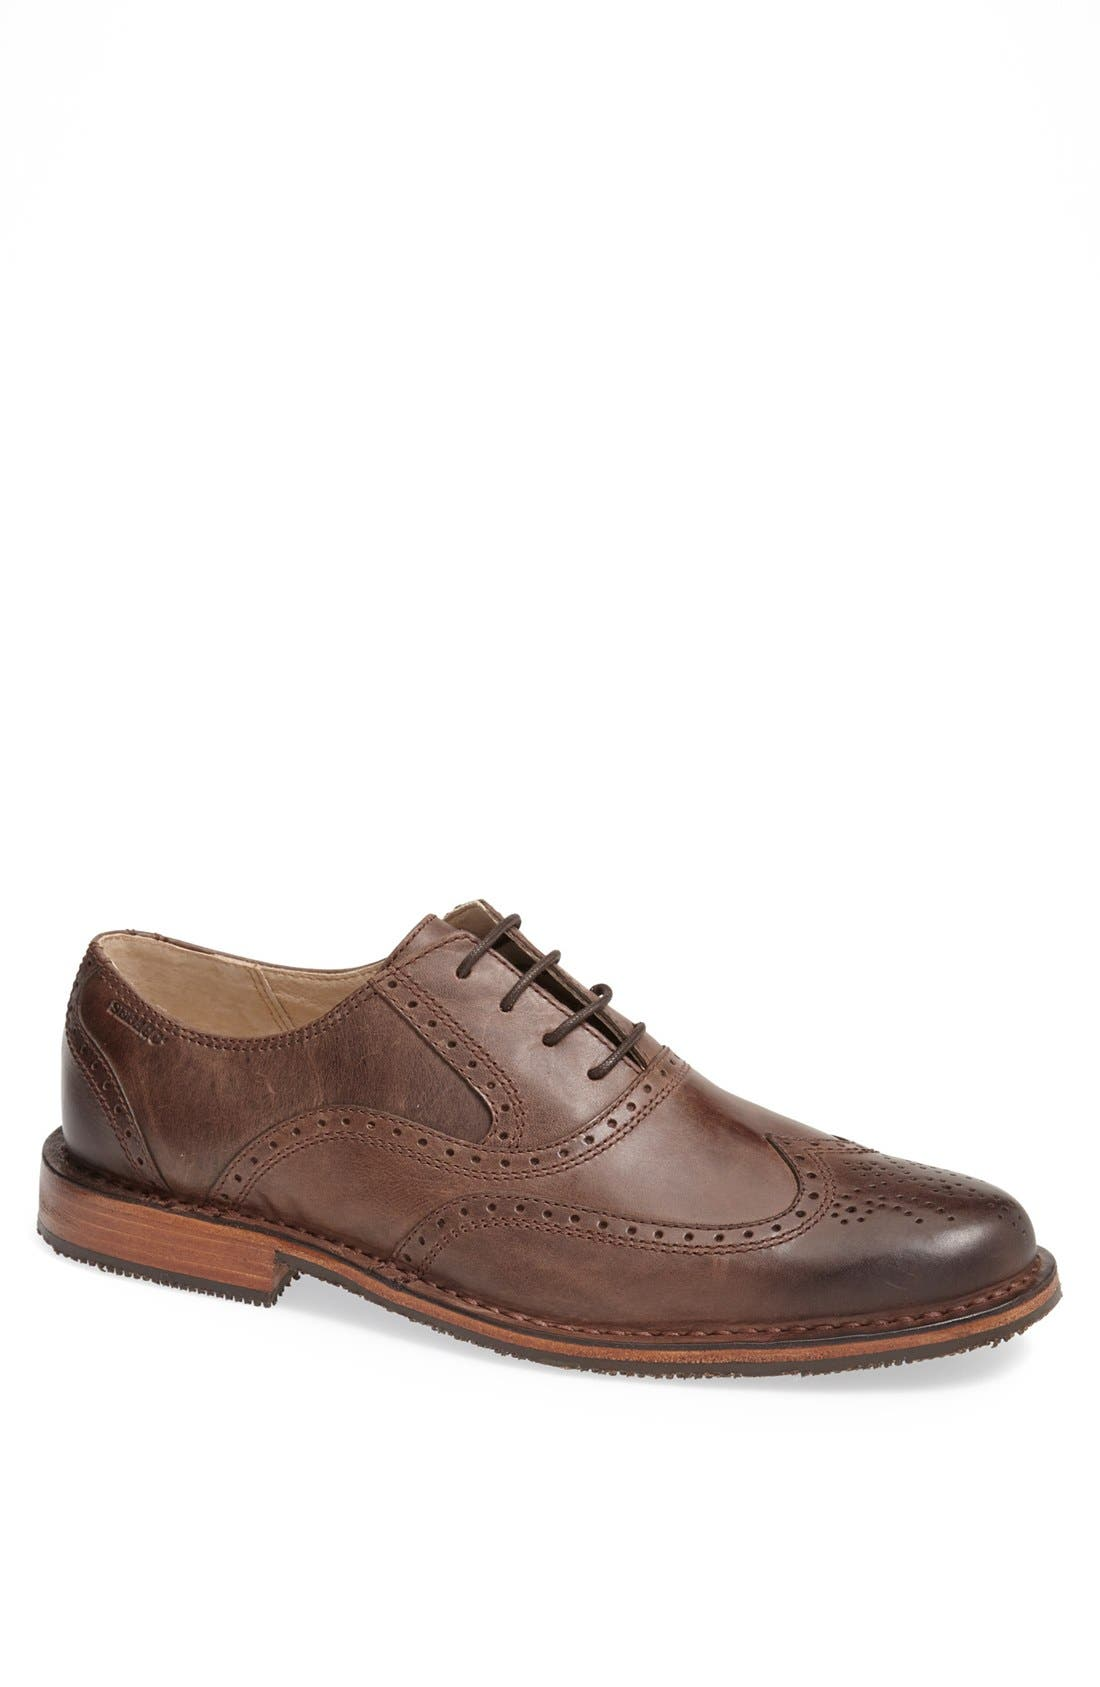 Alternate Image 1 Selected - Sebago 'Brattle' Wingtip Oxford (Online Only)